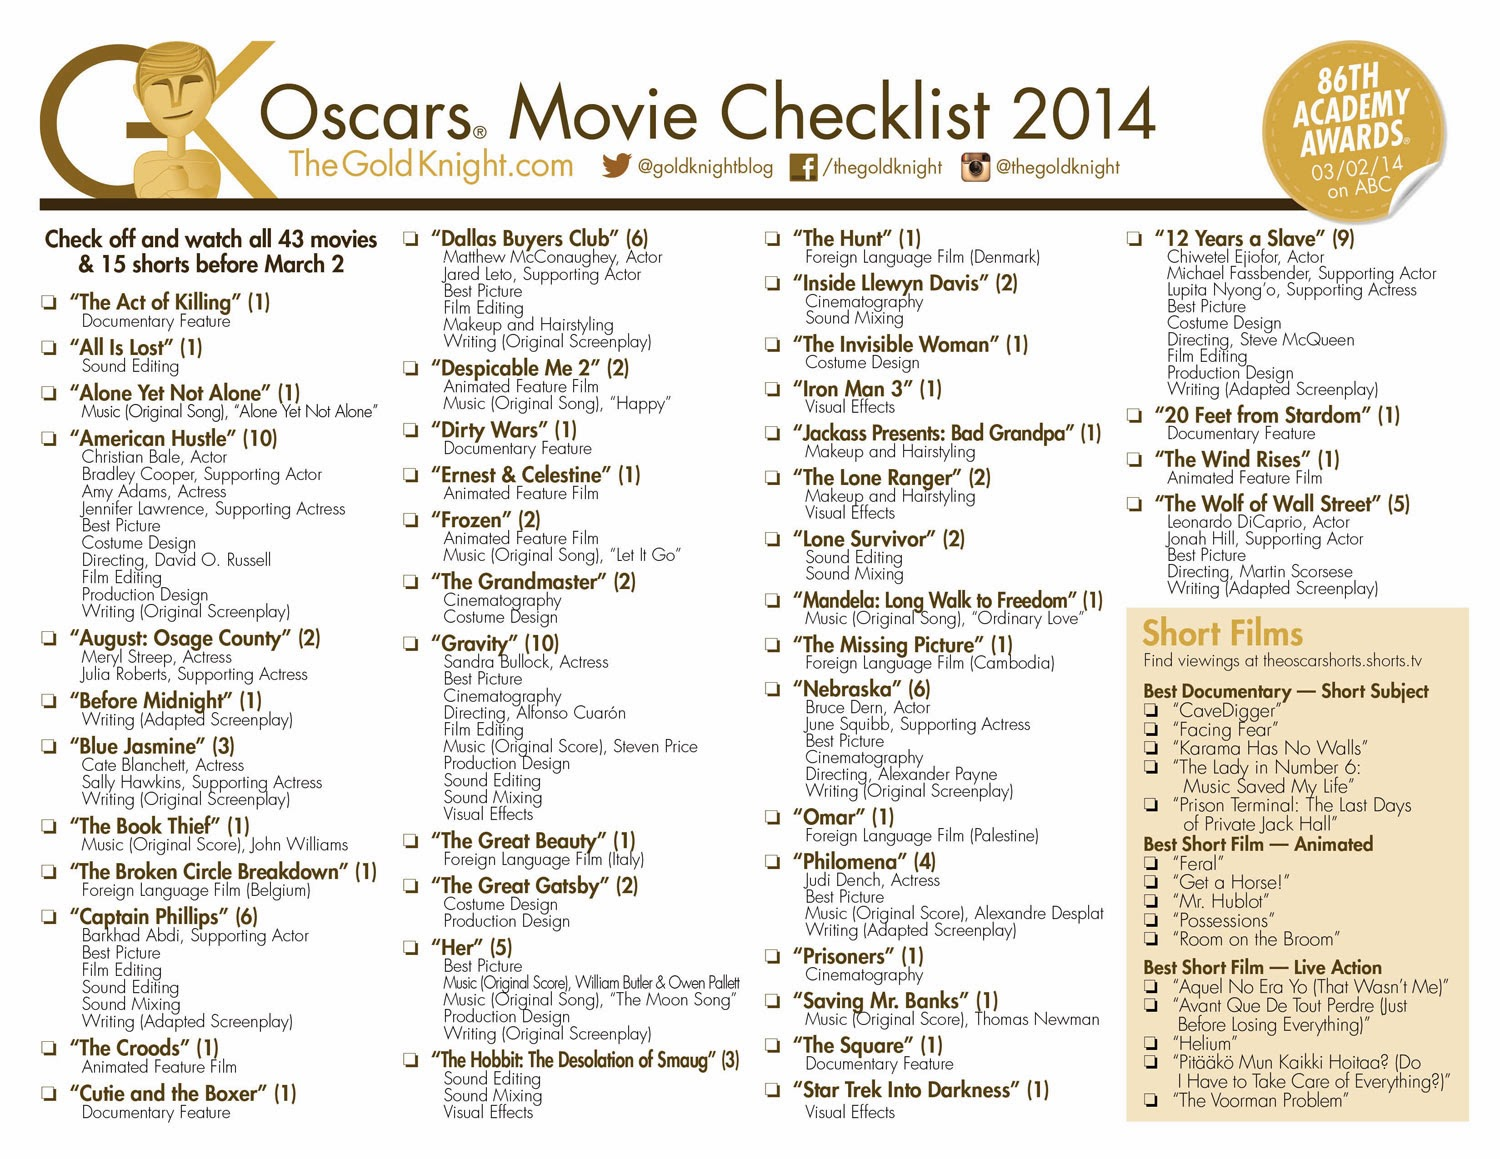 89th Academy Awards Nominations Full List Watch Announcement Replay Oscars Noms Video List moreover Free Printable Diaper Raffle Tickets in addition Oscars Party Ideas At Home likewise Asl Alphabet further La La Land Movie Posters. on download your oscar ballot 2